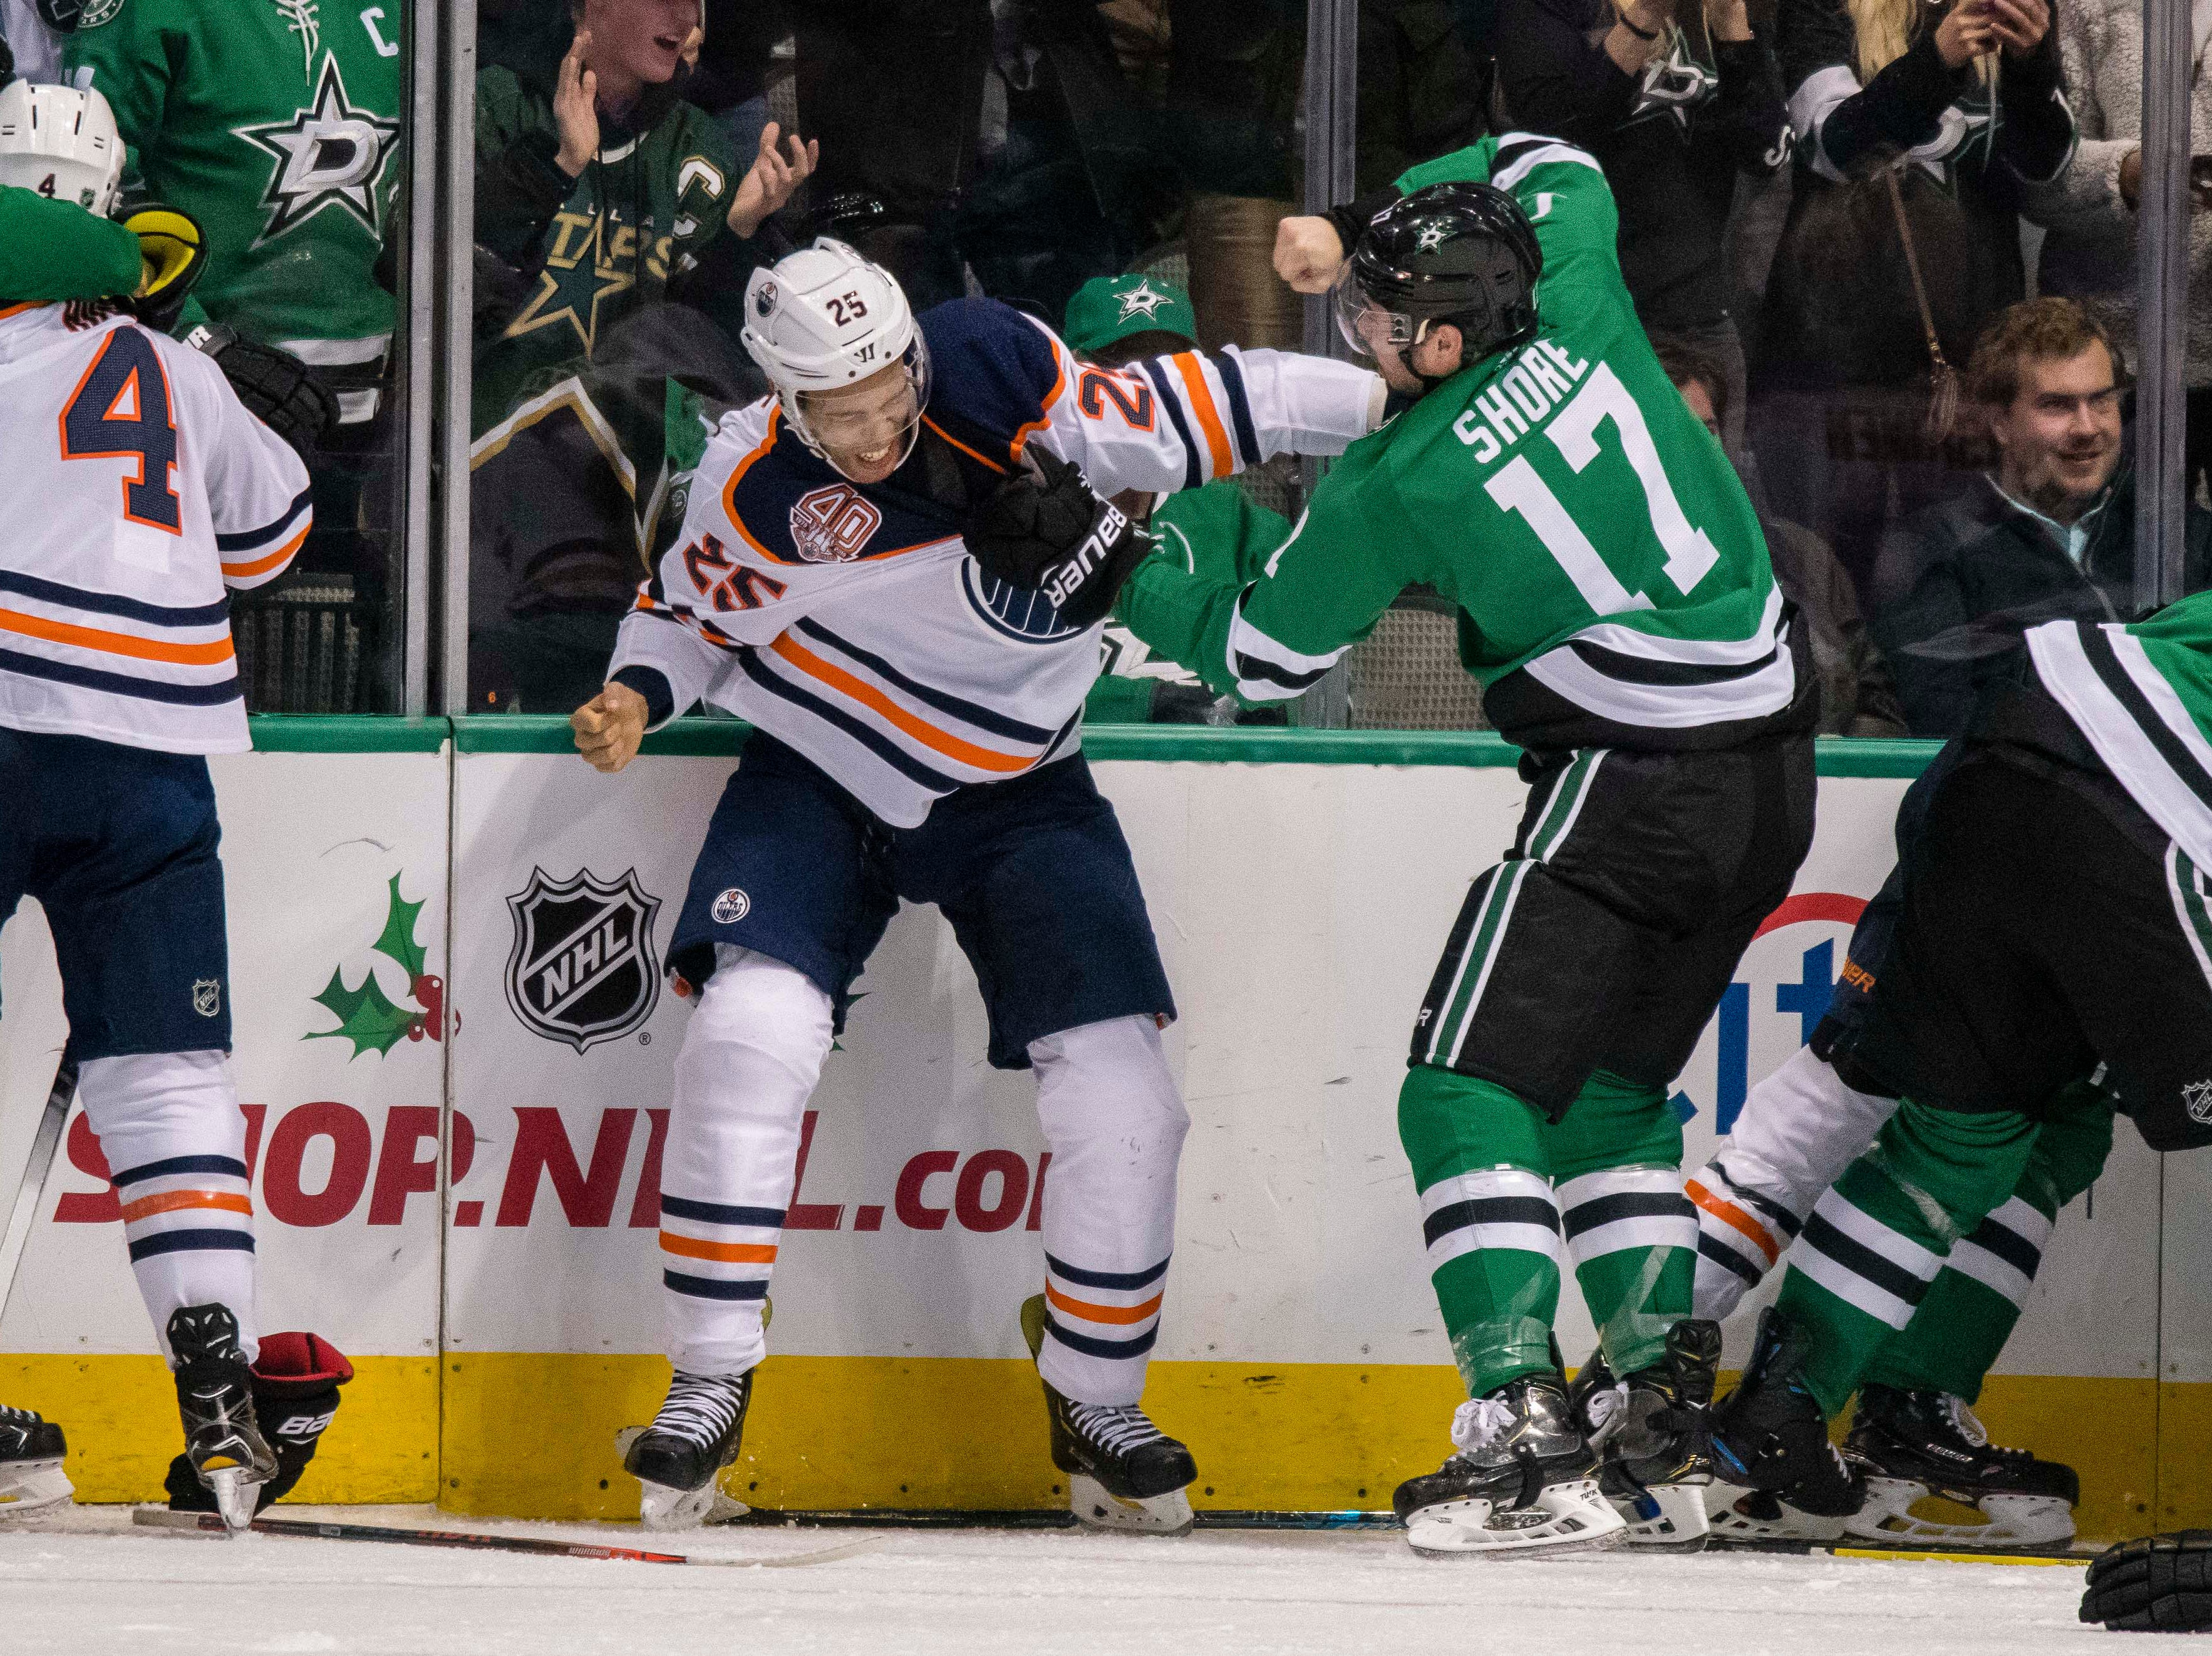 Dec. 3: Edmonton Oilers' Darnell Nurse vs. Dallas Stars' Devin Shore.